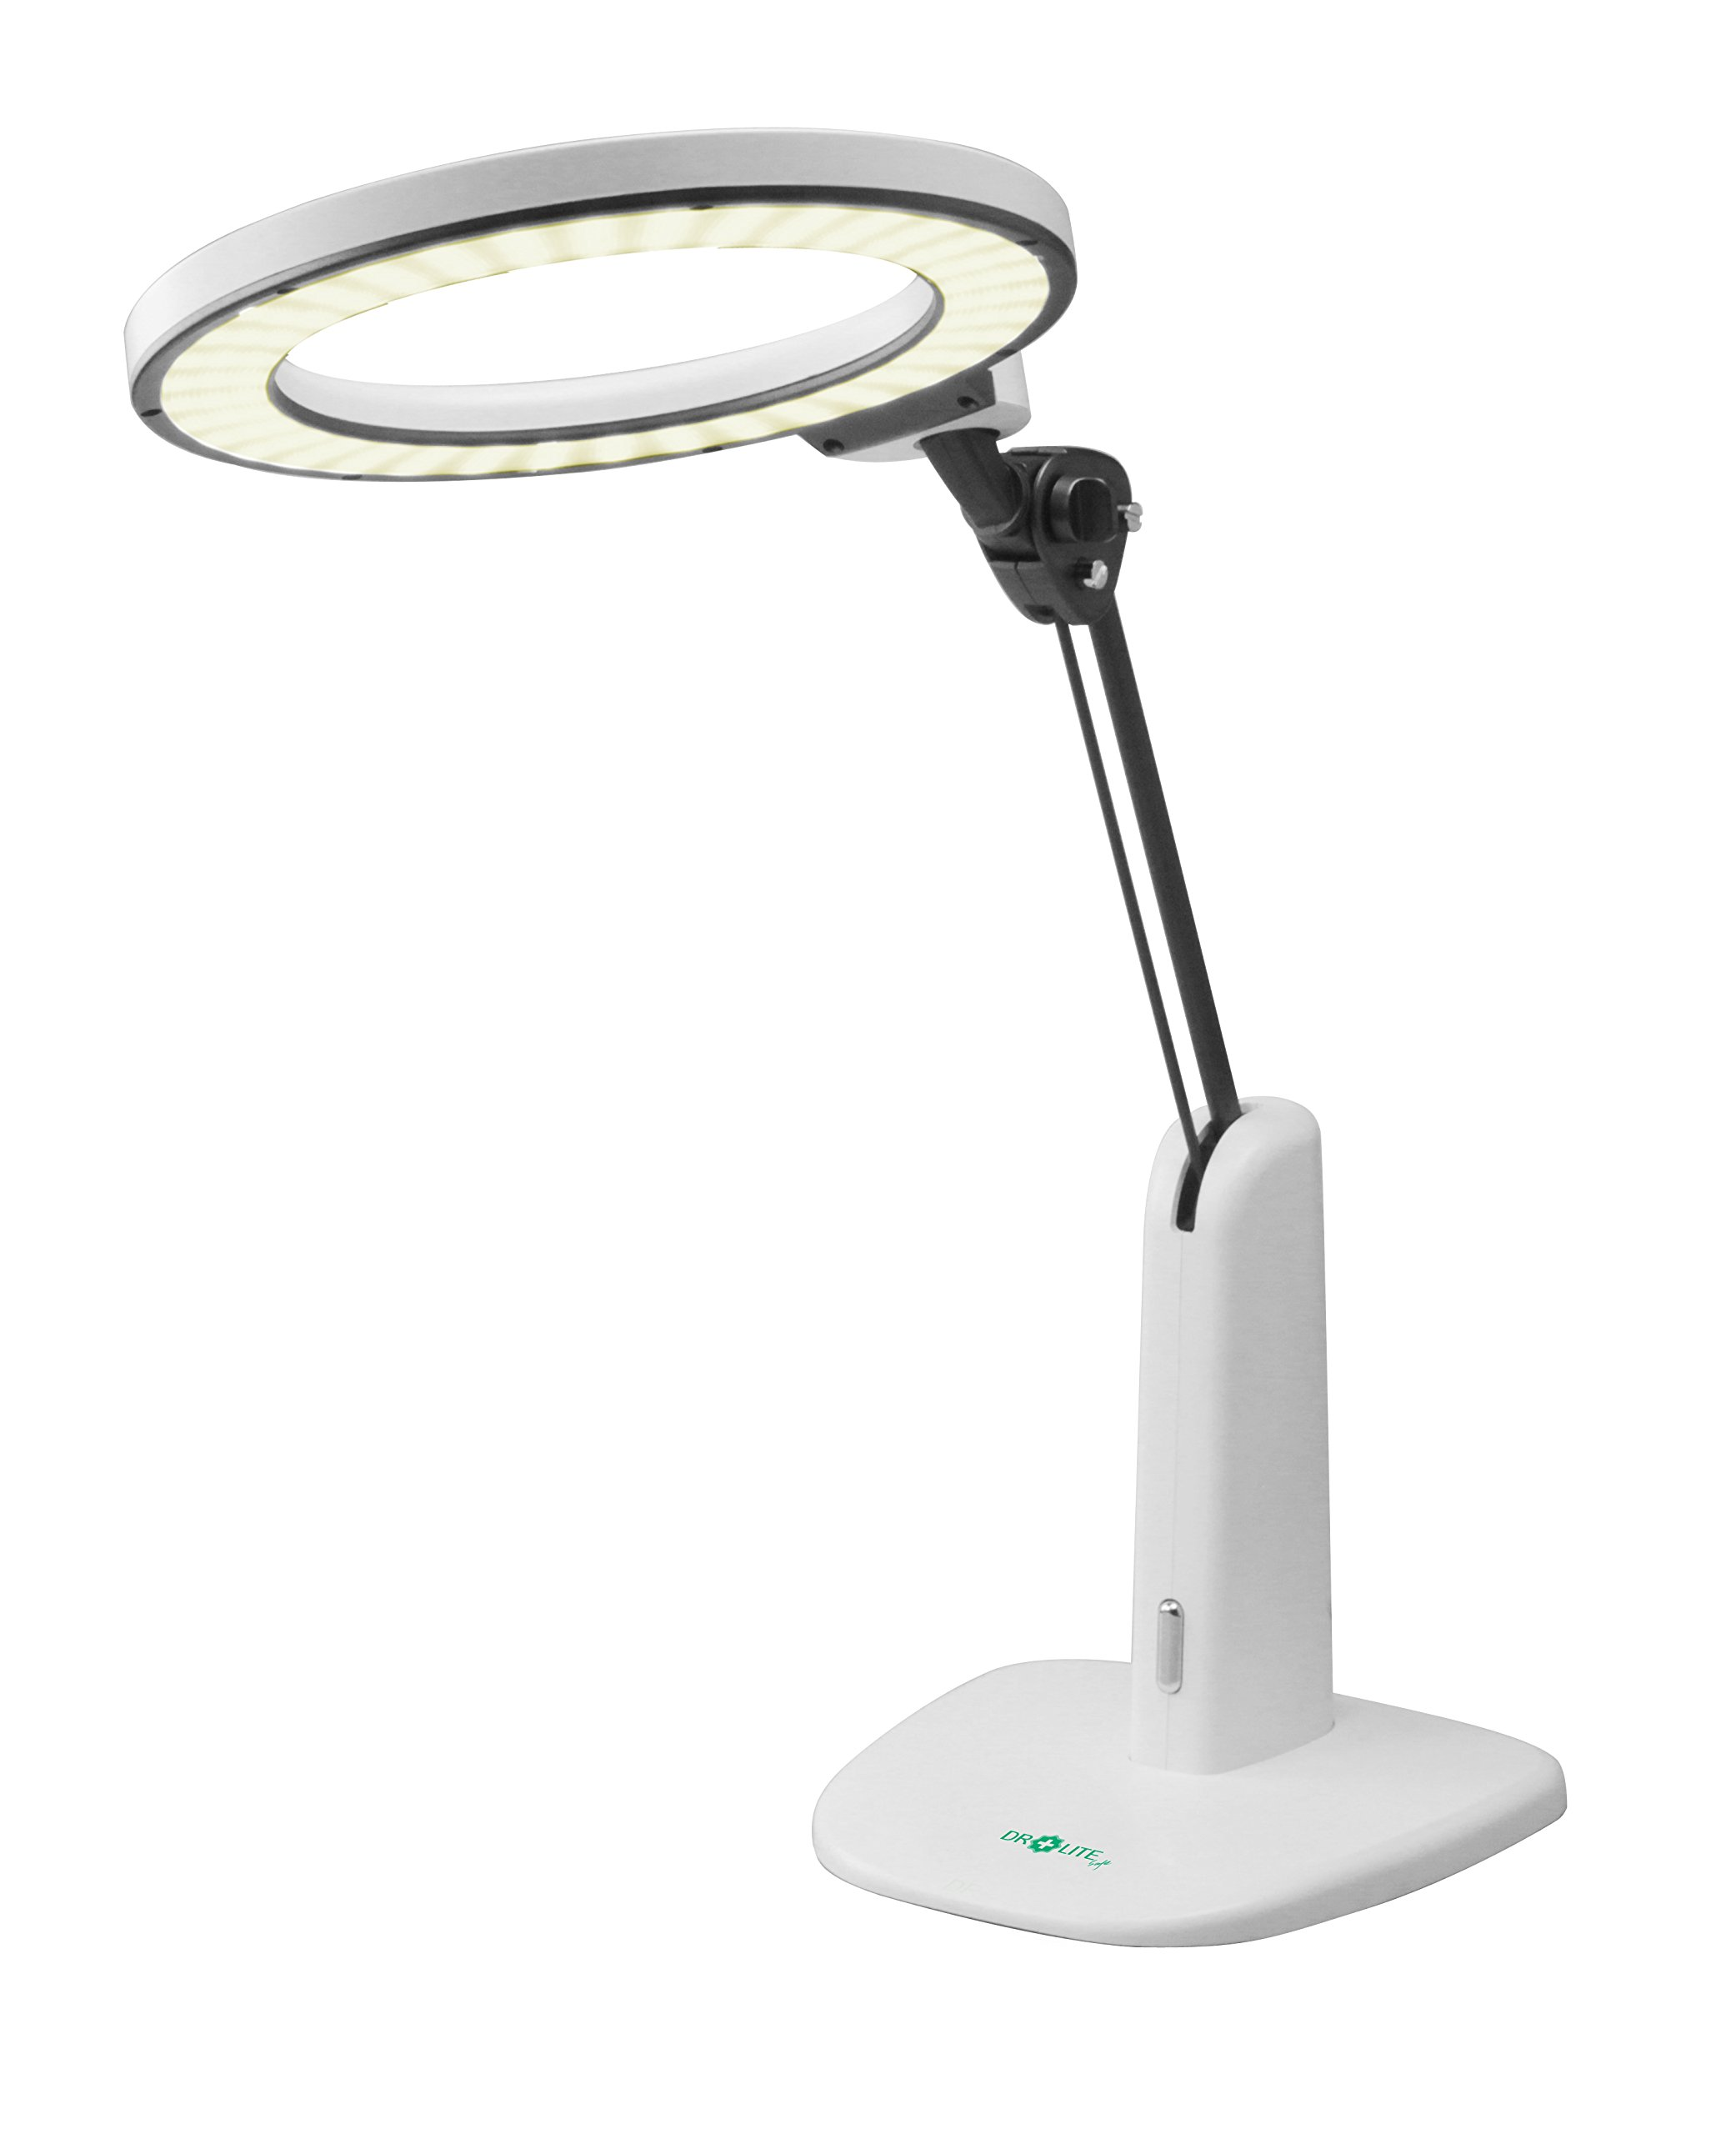 Dr. Lite- Angel Study Light | Patented''Blue Light Reduction'' Technology | EMC Safe | Significantly Reduced Table Glare | Computer Screen Glare Friendly | Ergonomic Design | UV Free | Flicker Free